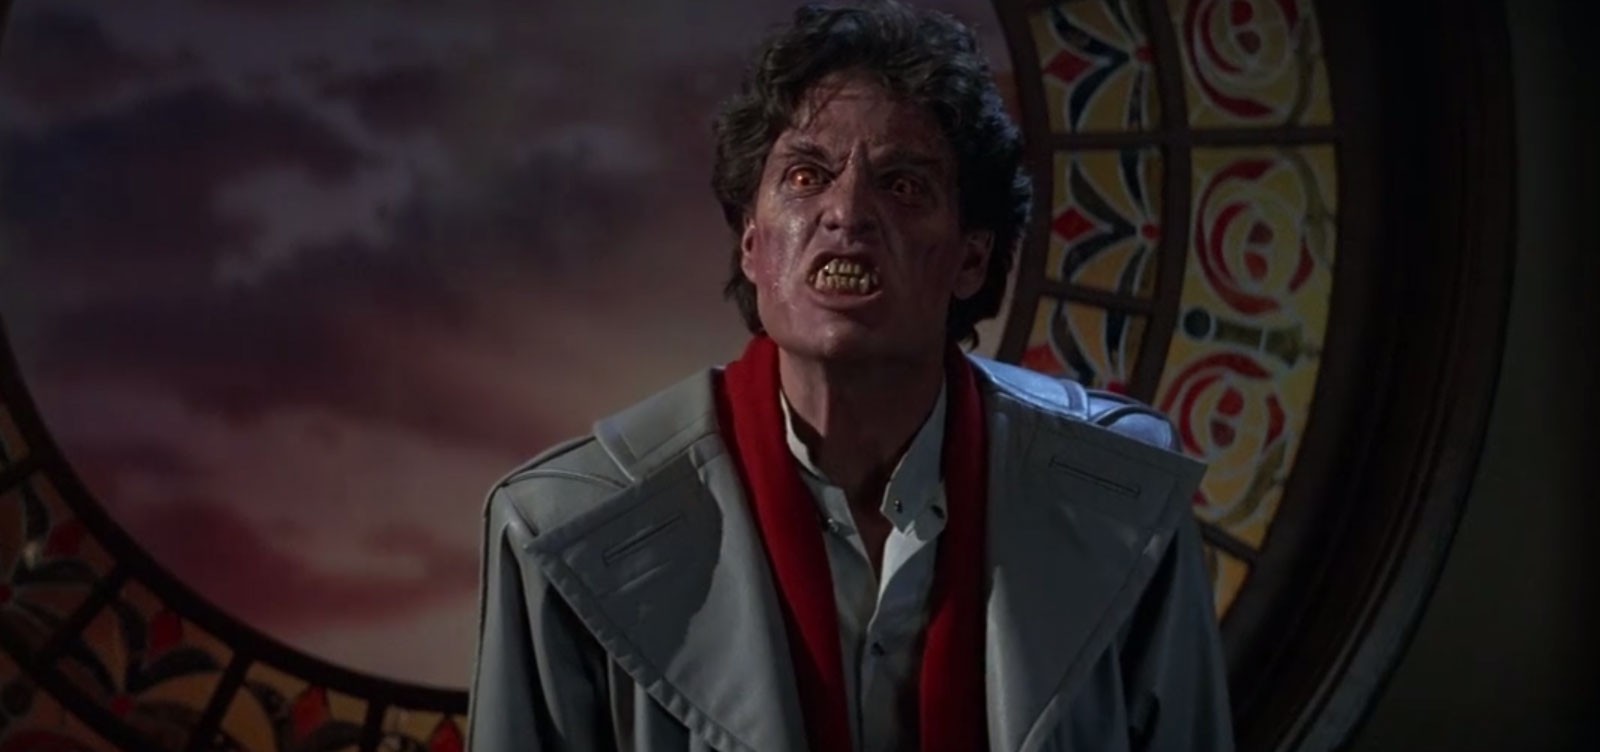 Fright_Night_85_Review_Images_V07